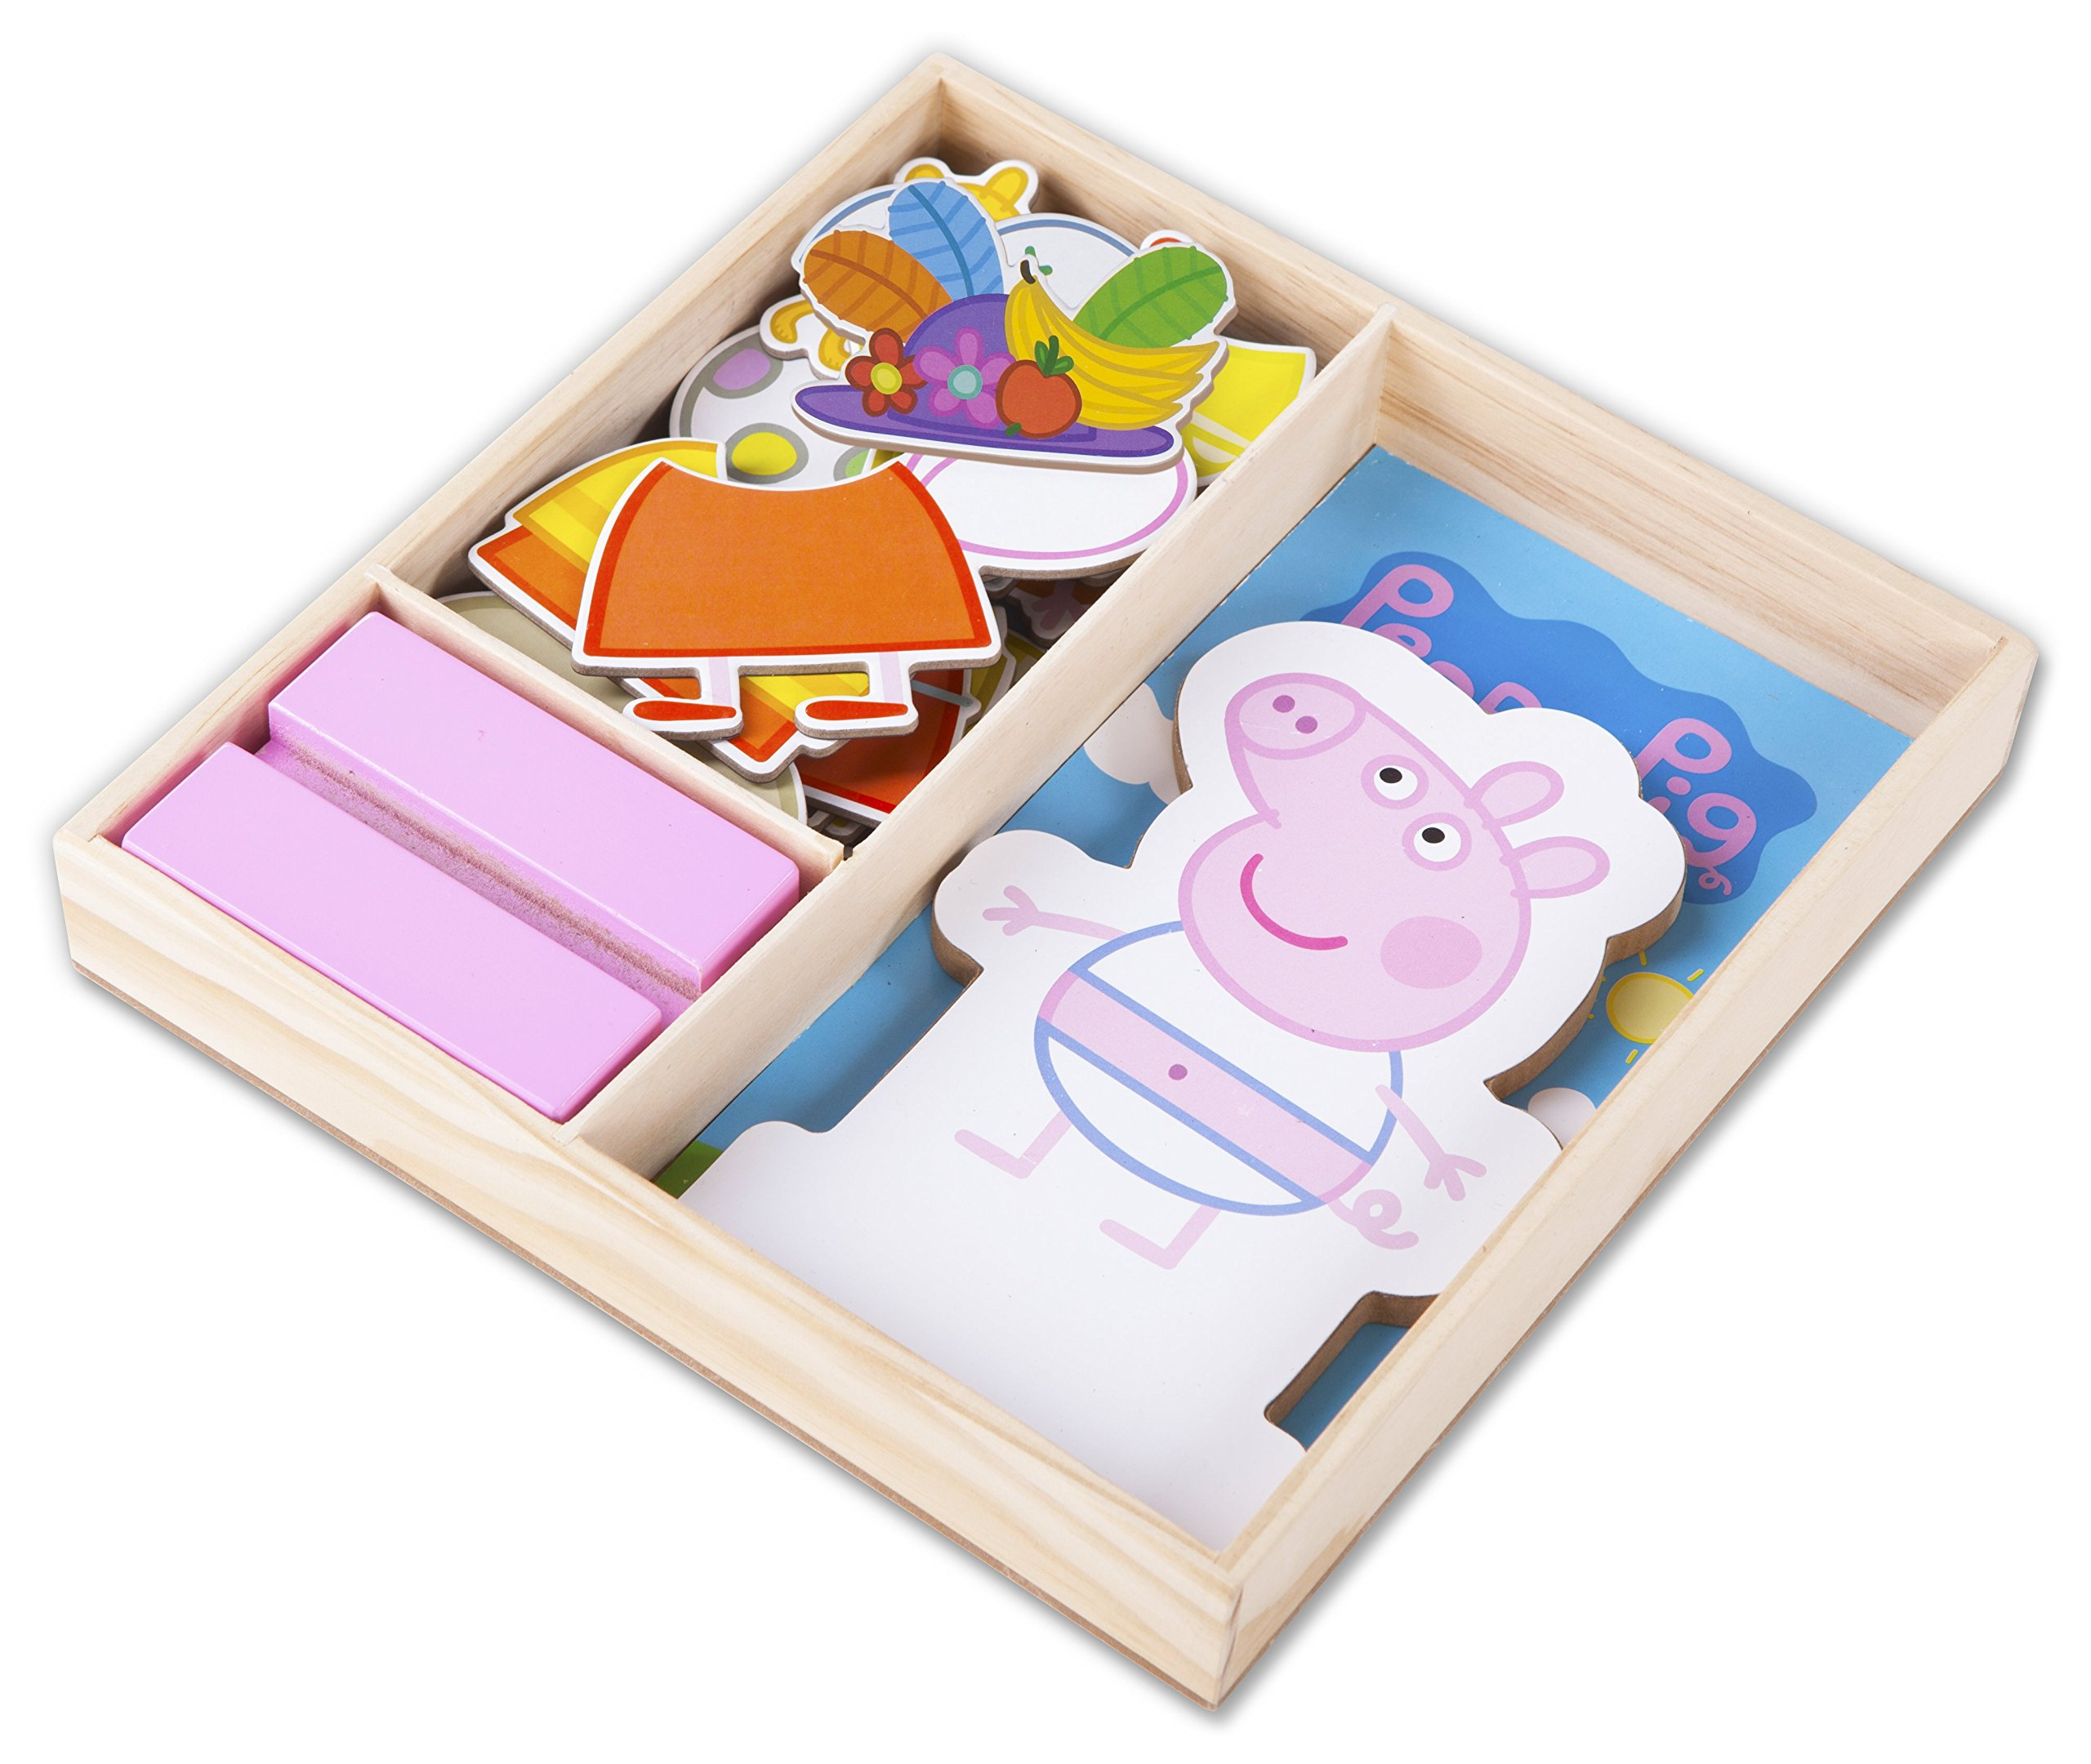 Peppa Pig Magnetic Wood Dress Up Puzzle (25 Piece) by Peppa Pig